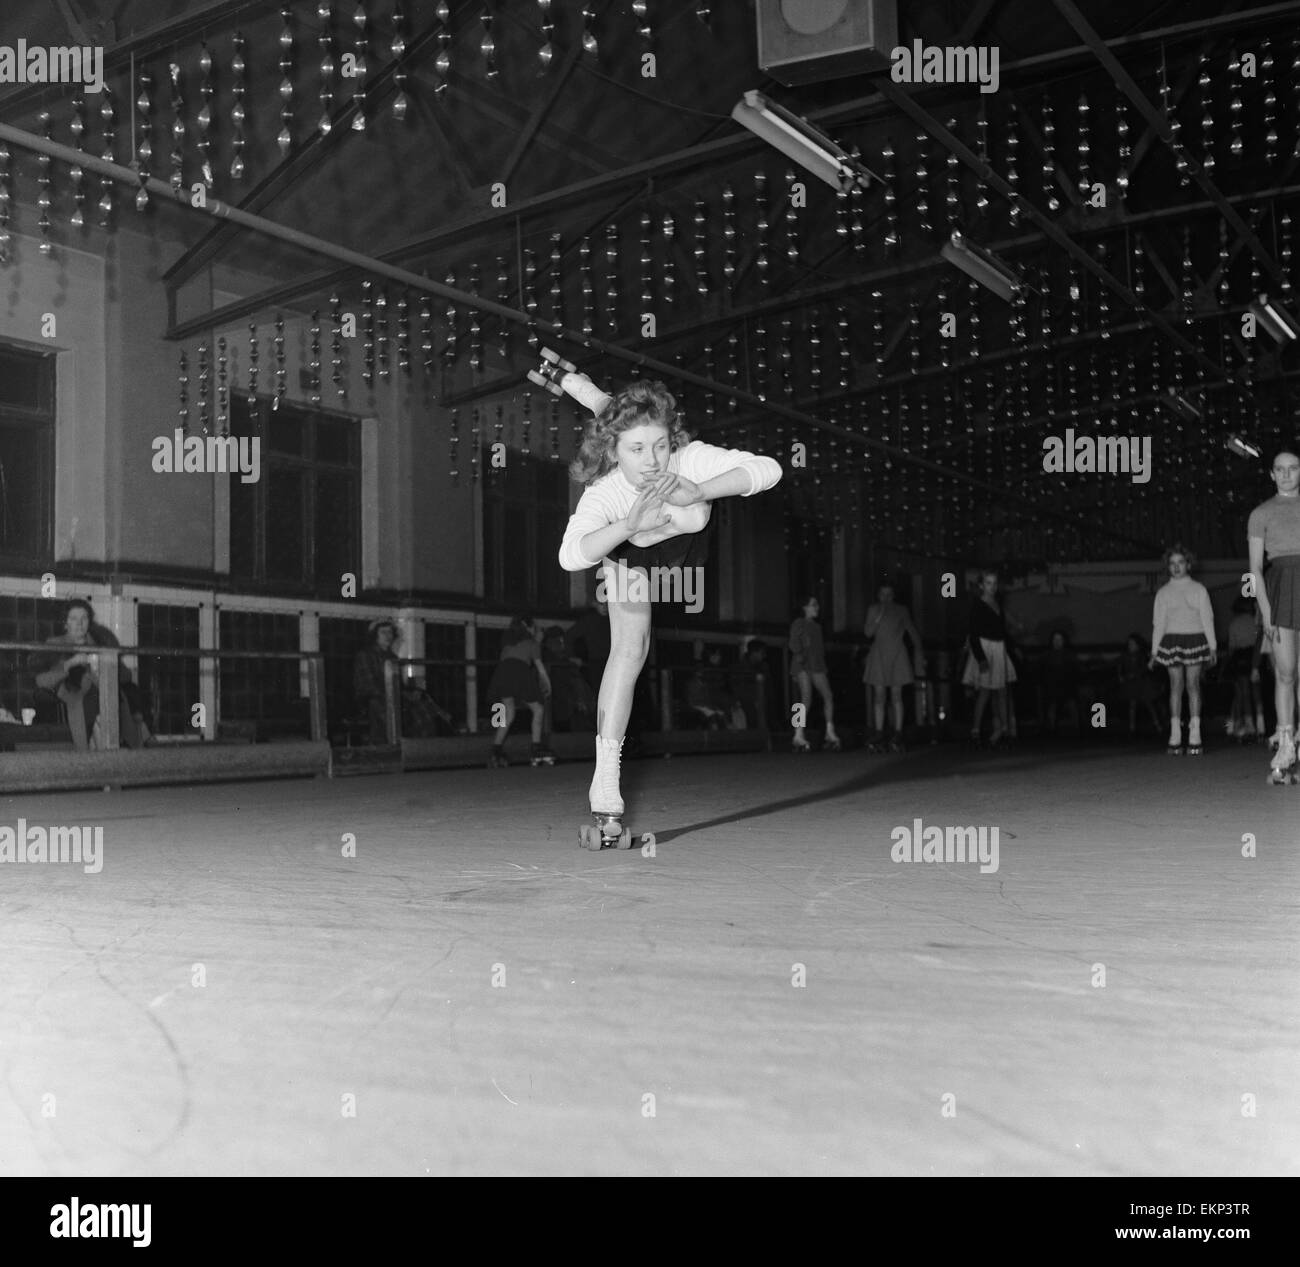 Roller skating rink kent